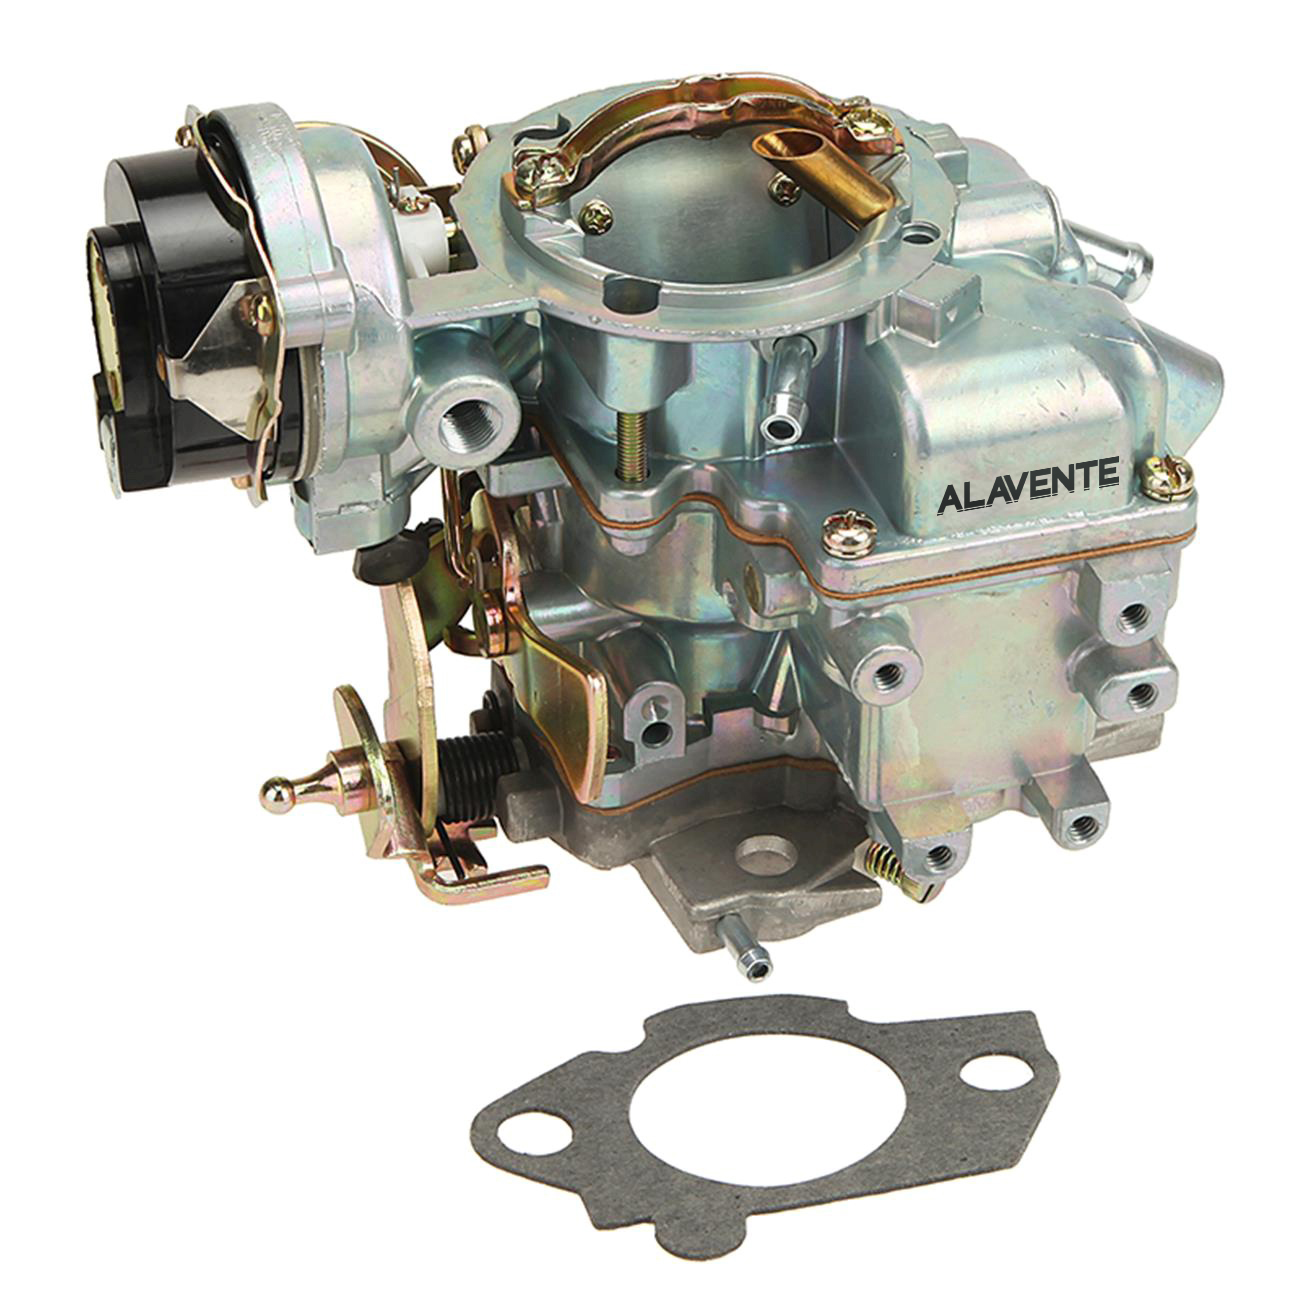 ALAVENTE Carburetor Type Carter F300 YFA 1 Barrel Automatic Choke For Ford 4.9L 300 Cu I6